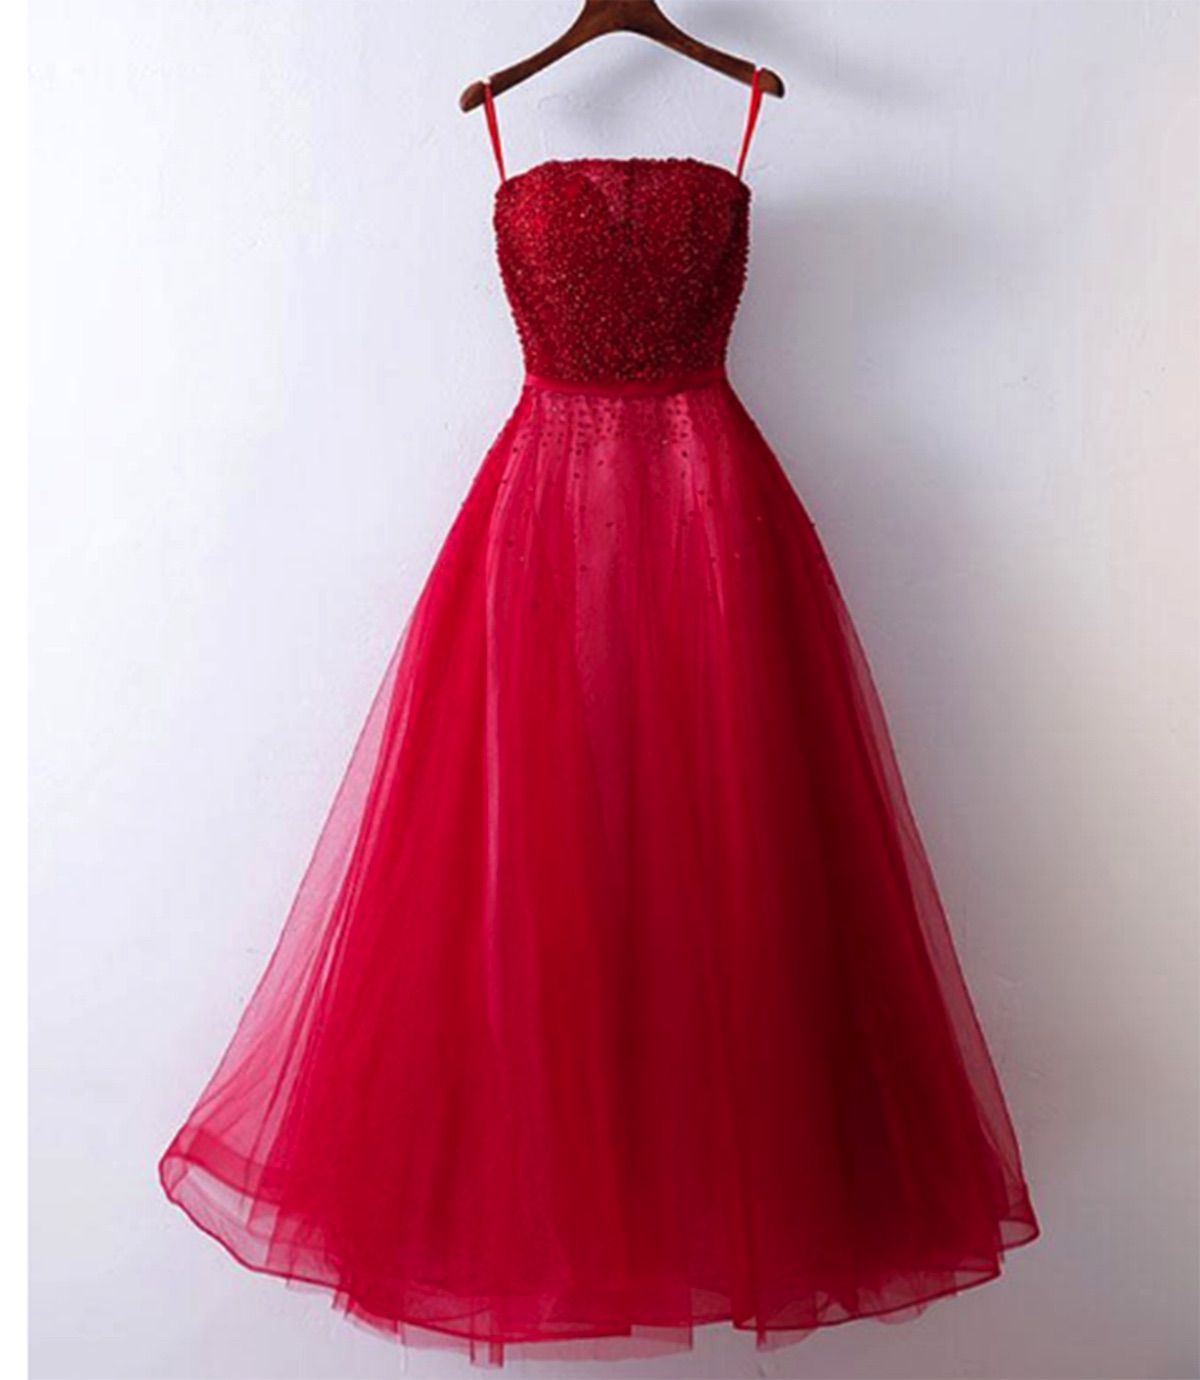 Cute red tulle sequins prom dress with straps promdress prom